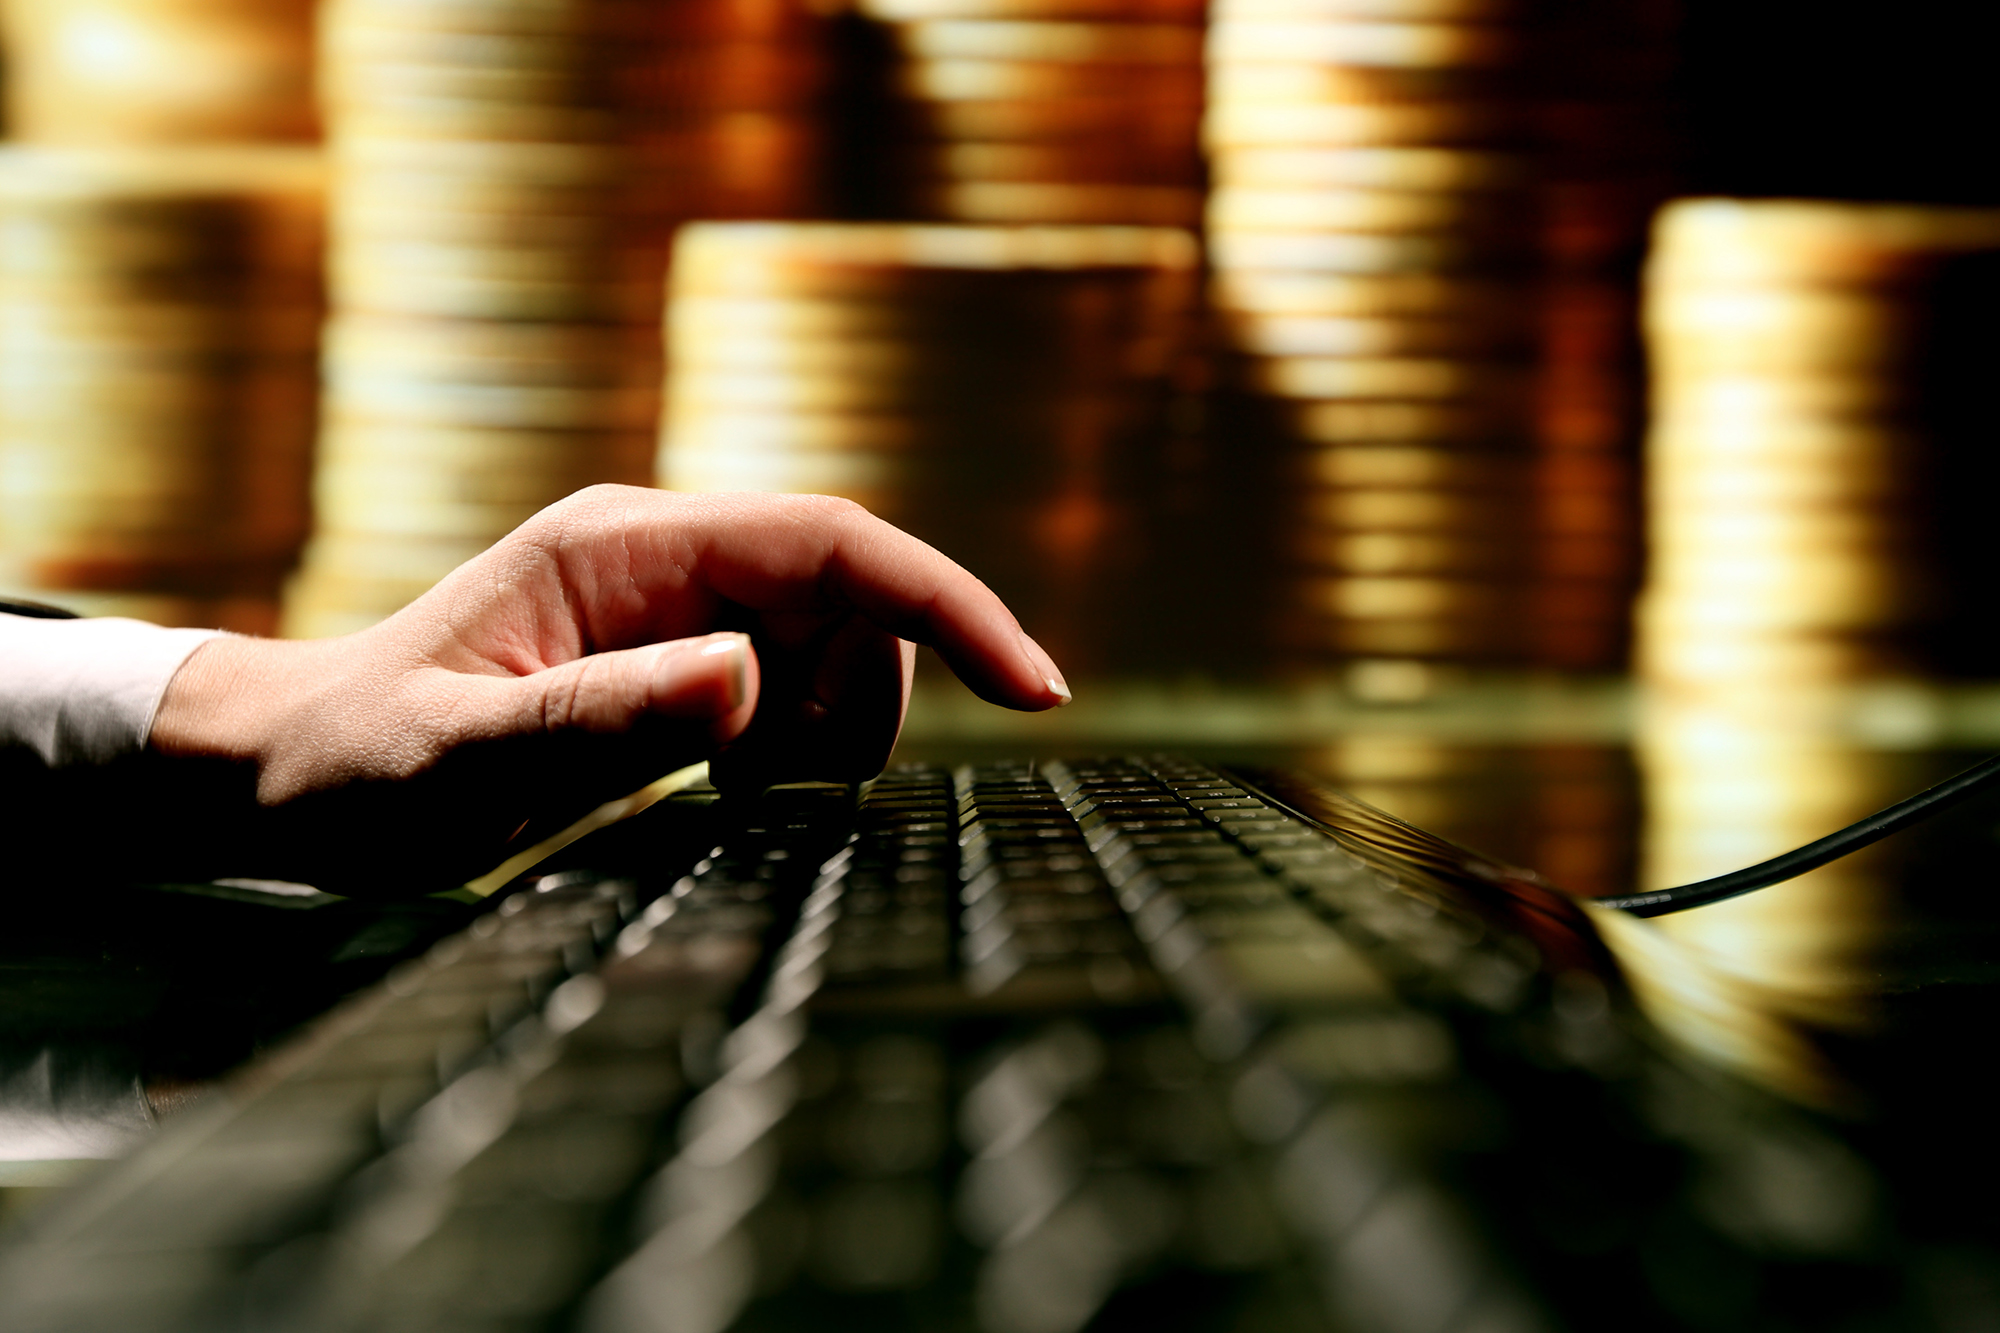 The promise of gold coins lured many to the internet. (Shutterstock)